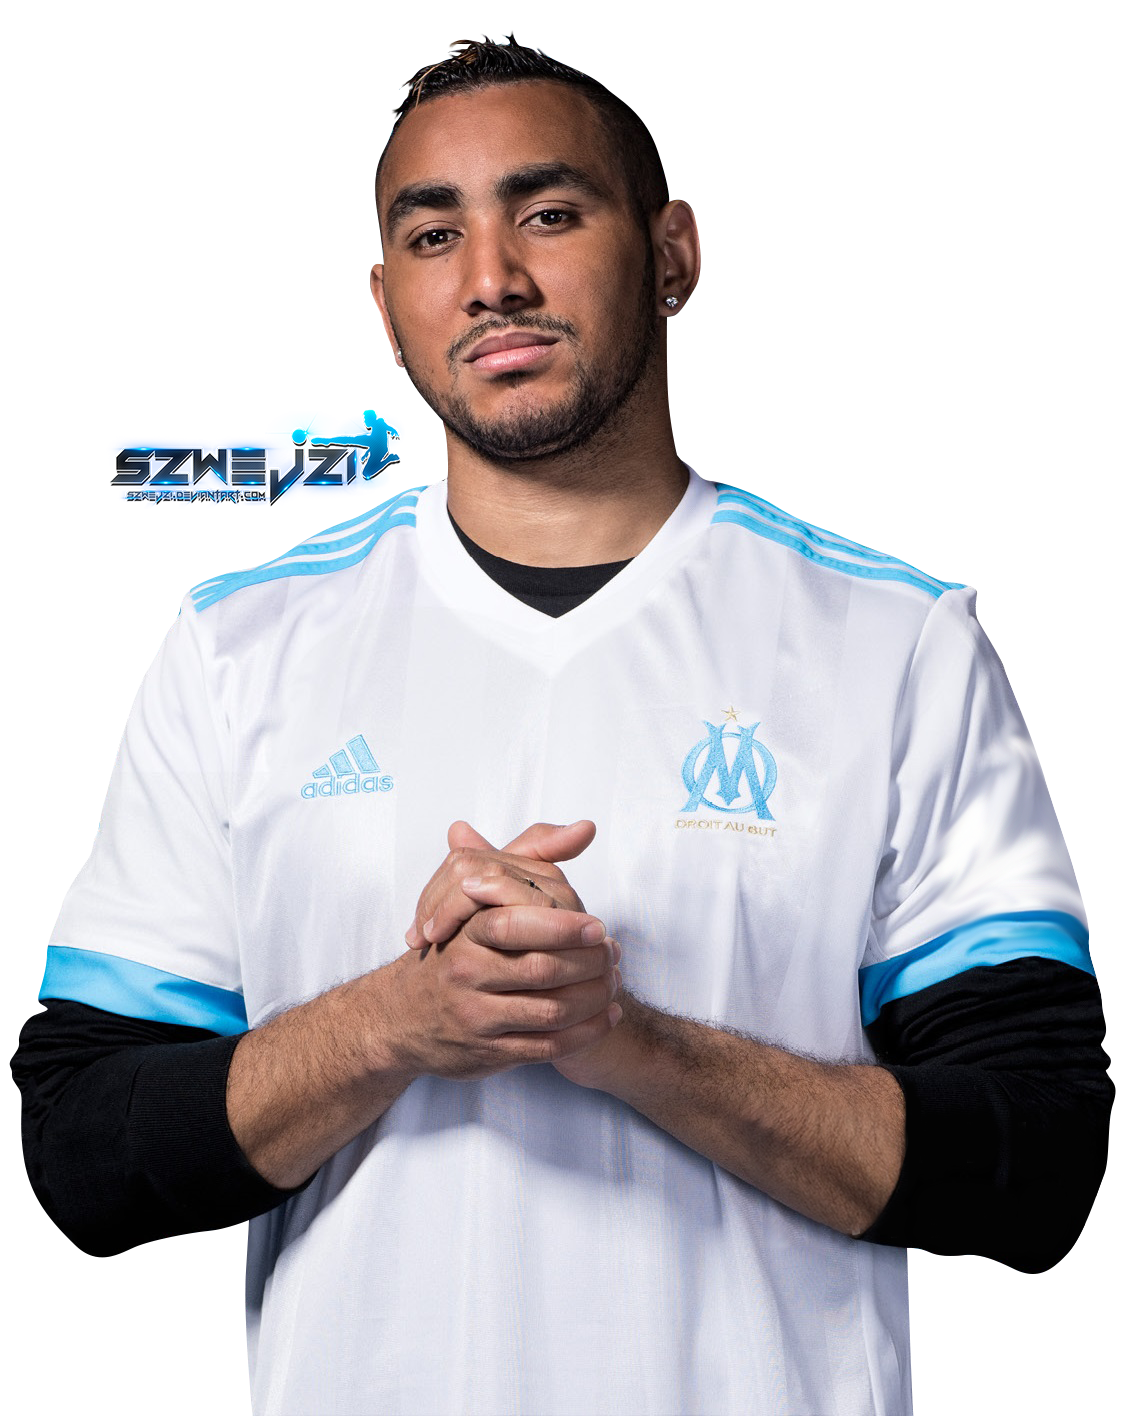 Dimitri Payet by szwejzi on DeviantArt